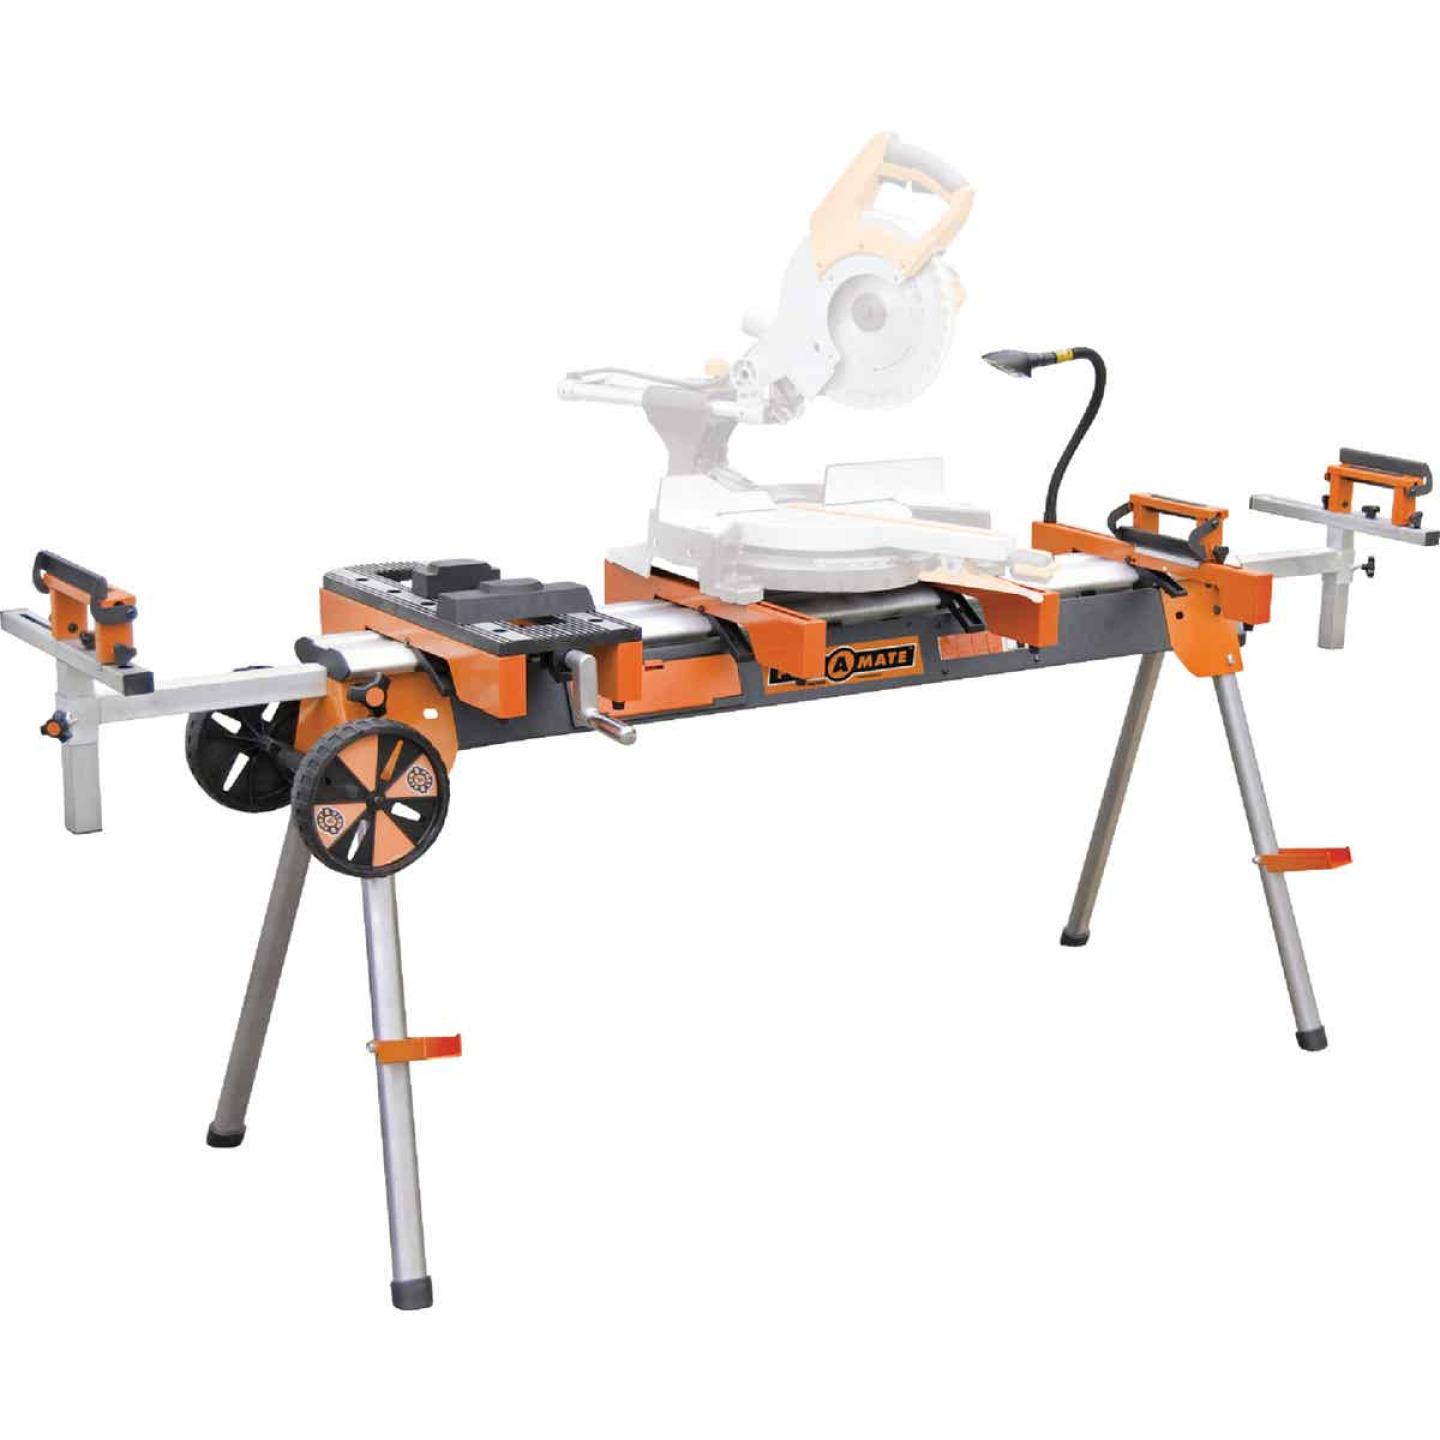 Power Mate Folding Workstation for Miter Saw Image 1